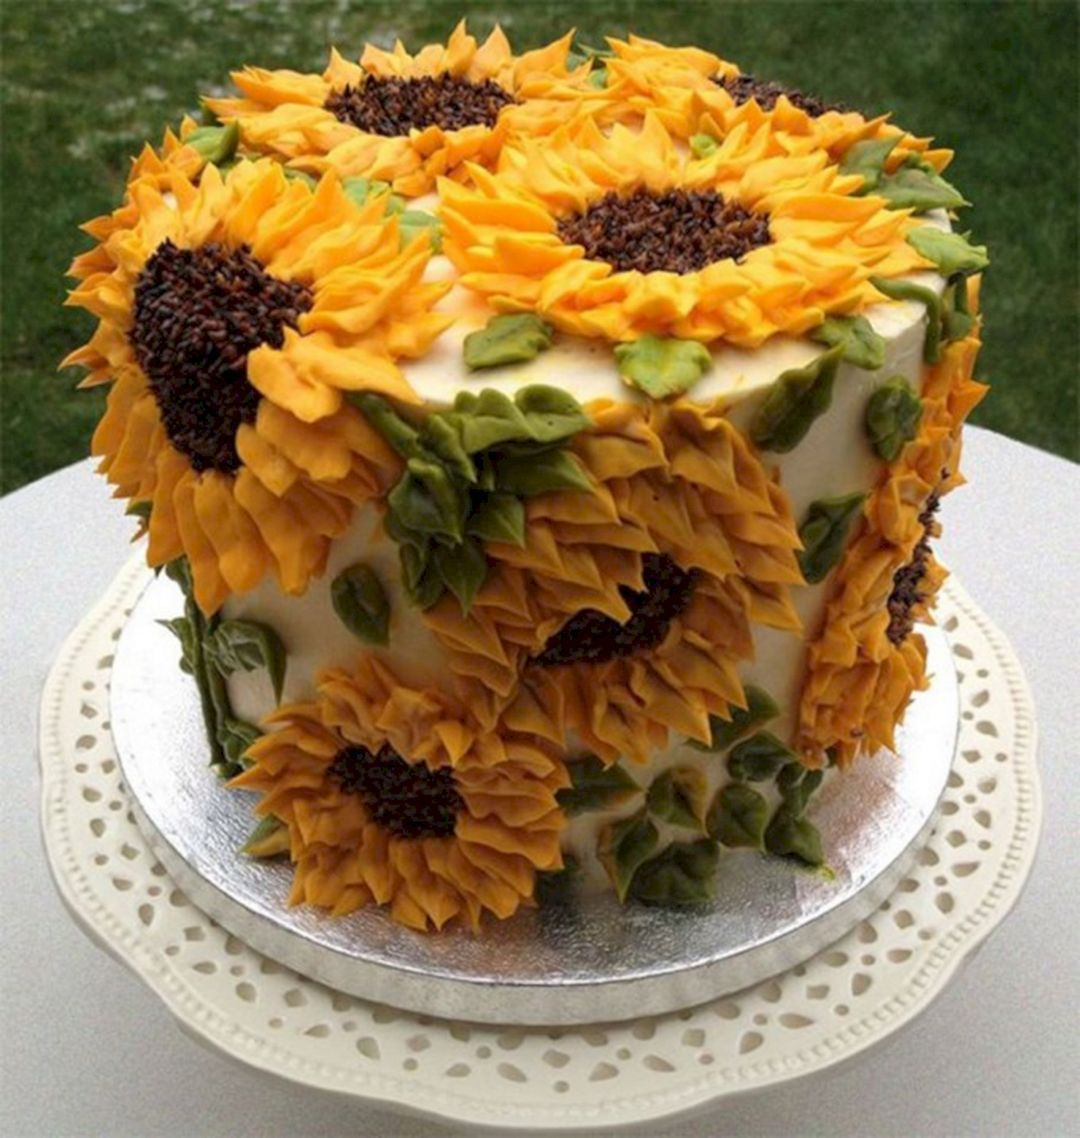 Beautiful Wedding Fall Cakes Decorating Ideas 29 #weddingfall